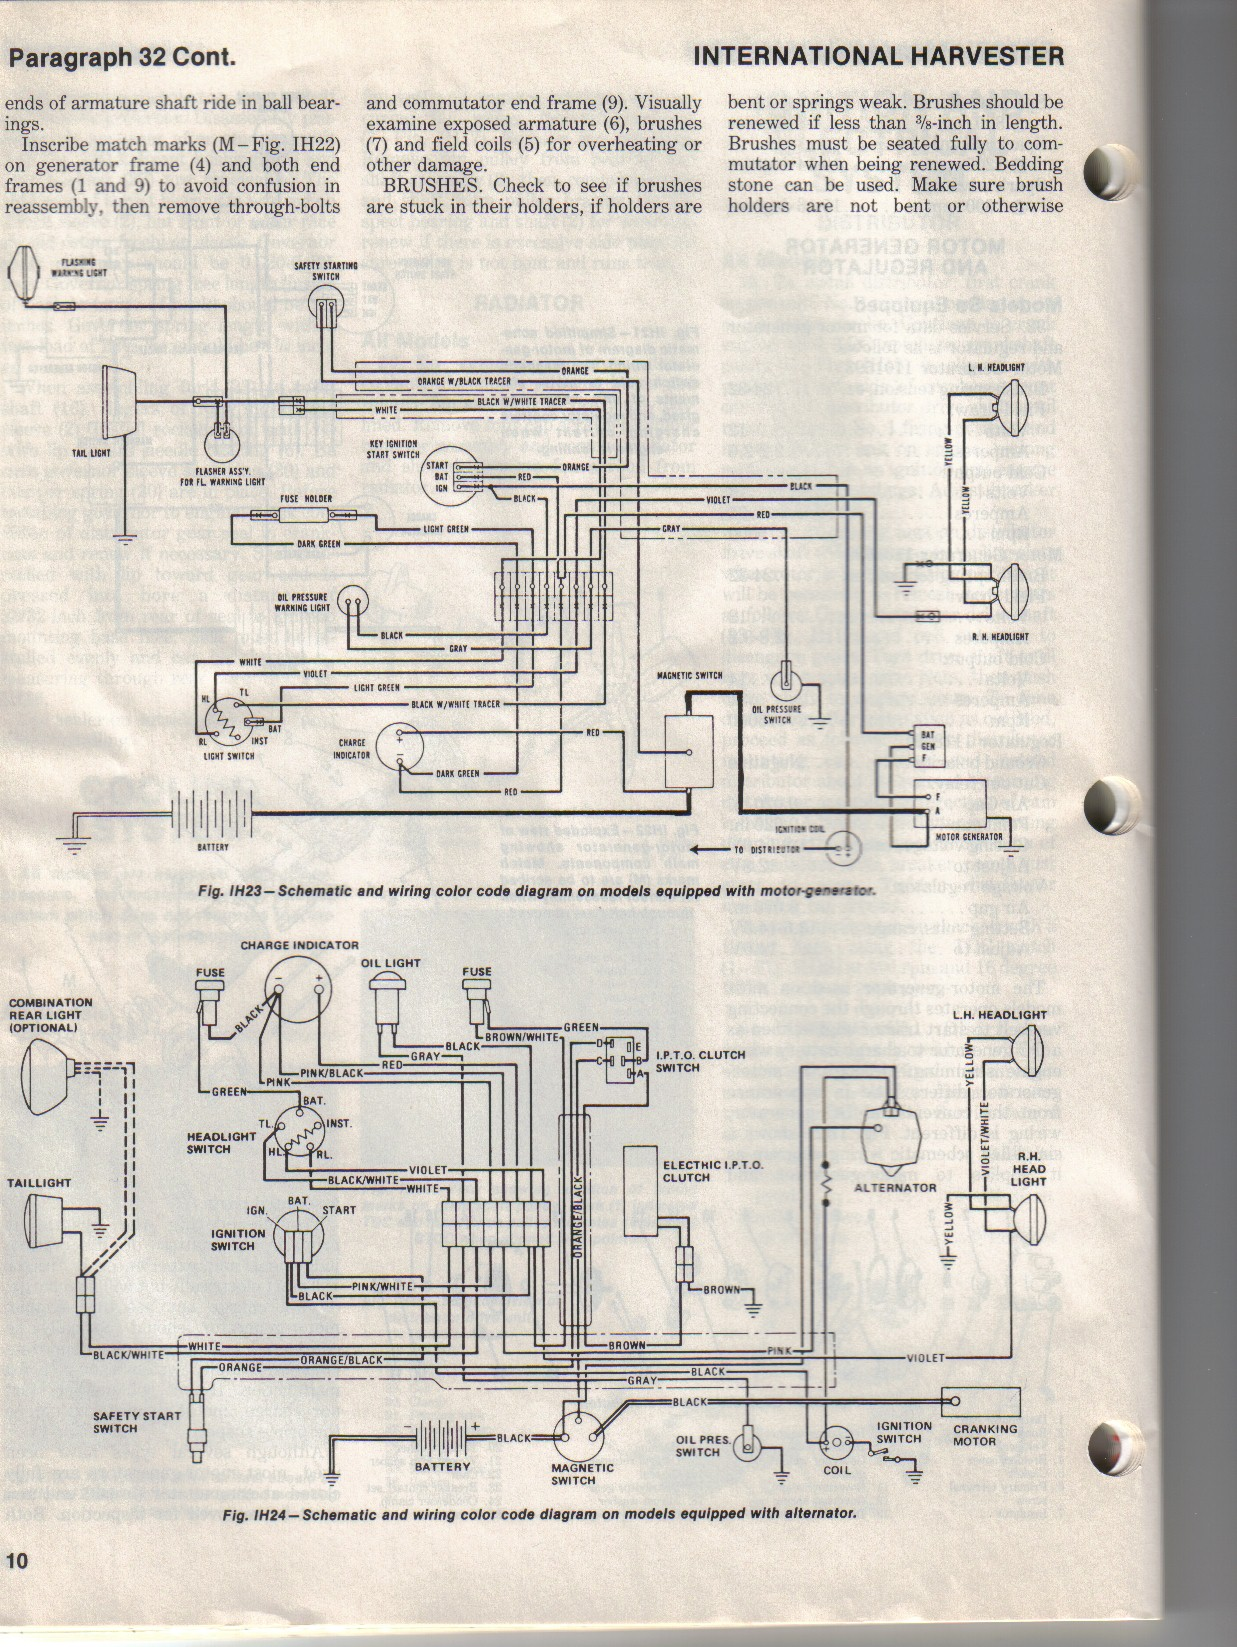 Page 10 farmallcub(dot)info manual galleries farmall cub 6 volt wiring diagram at n-0.co